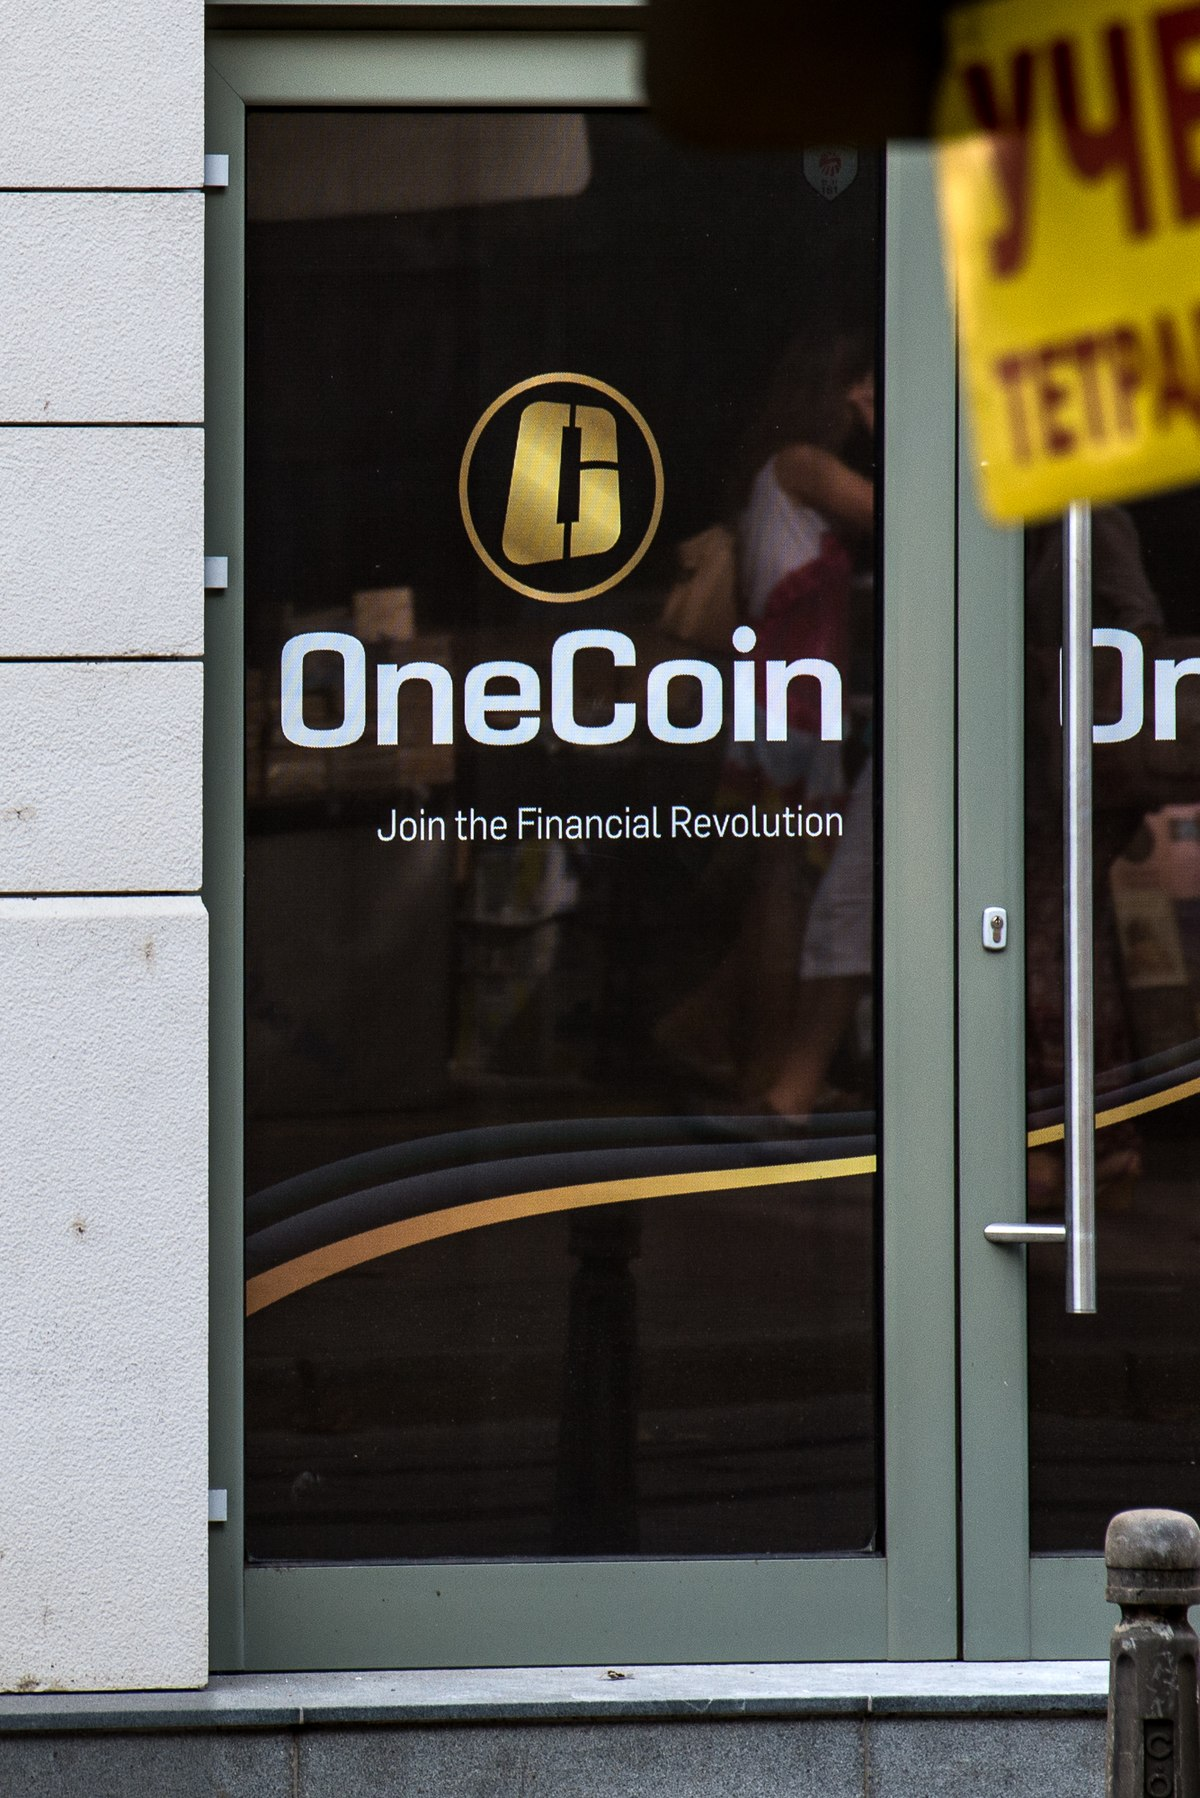 Onecoin Wikipedia Electronic Door Release Support Material